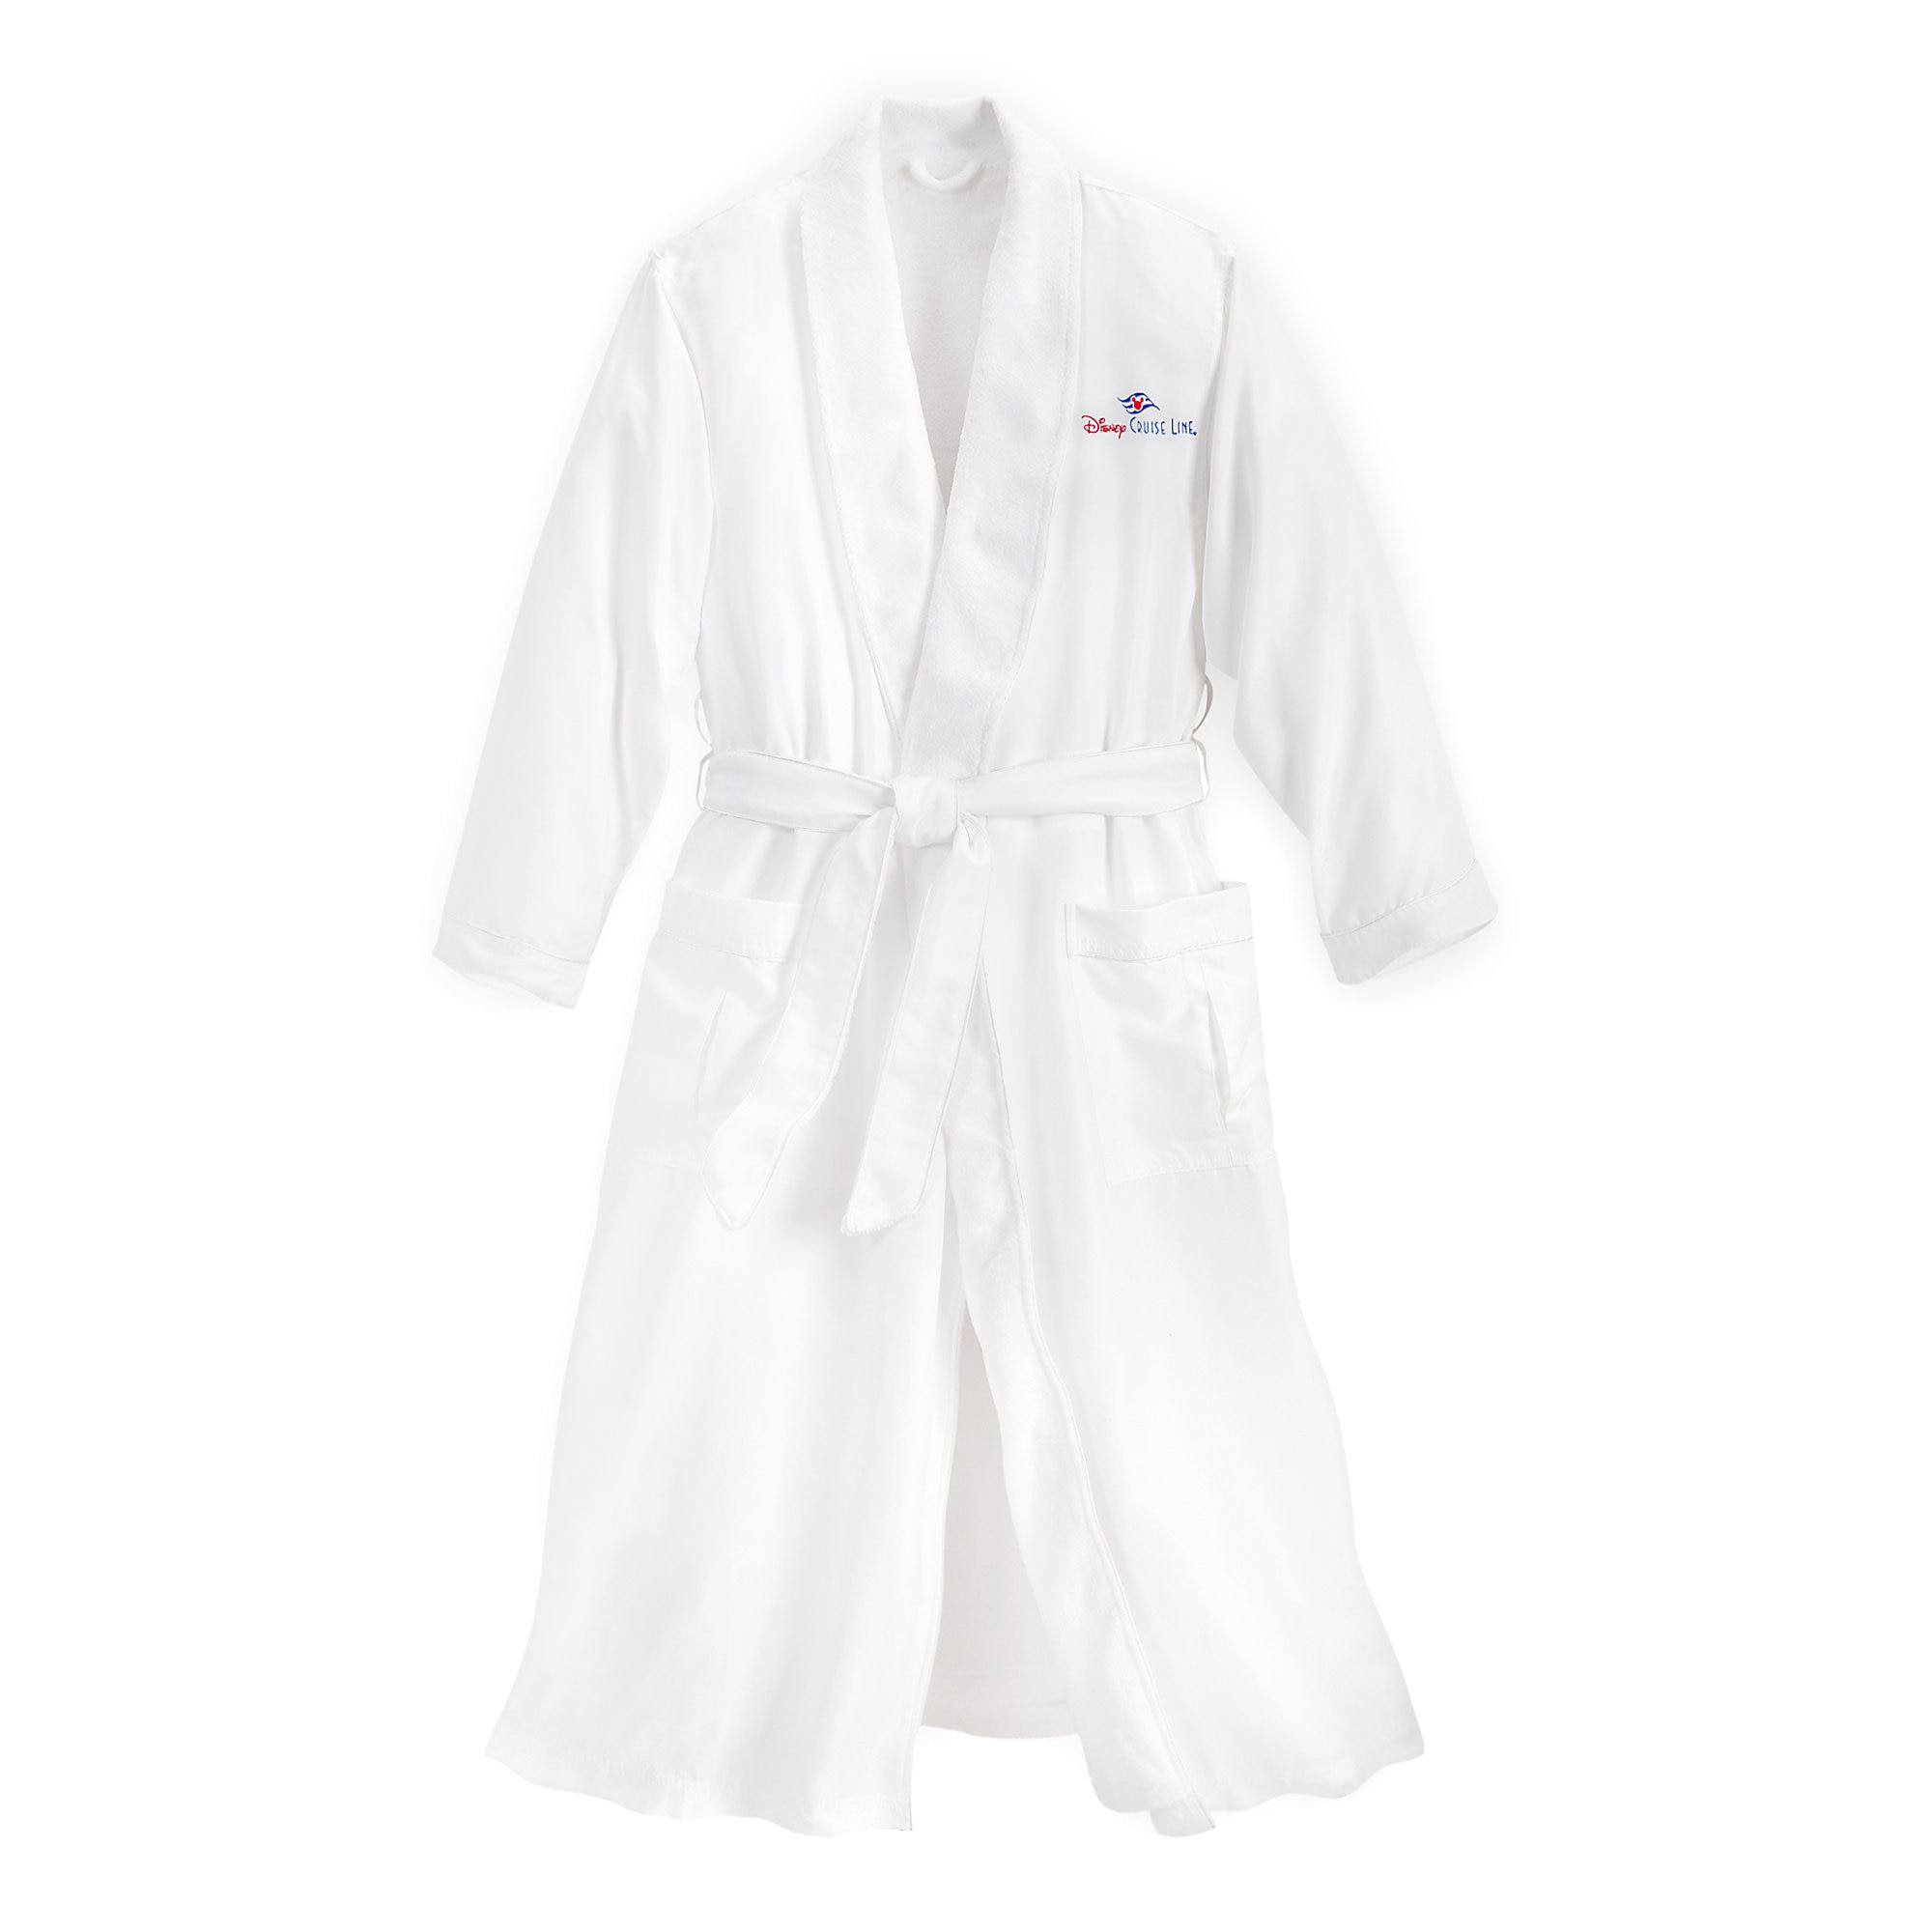 Disney Cruise Line Robe for Adults  e603fc1c3